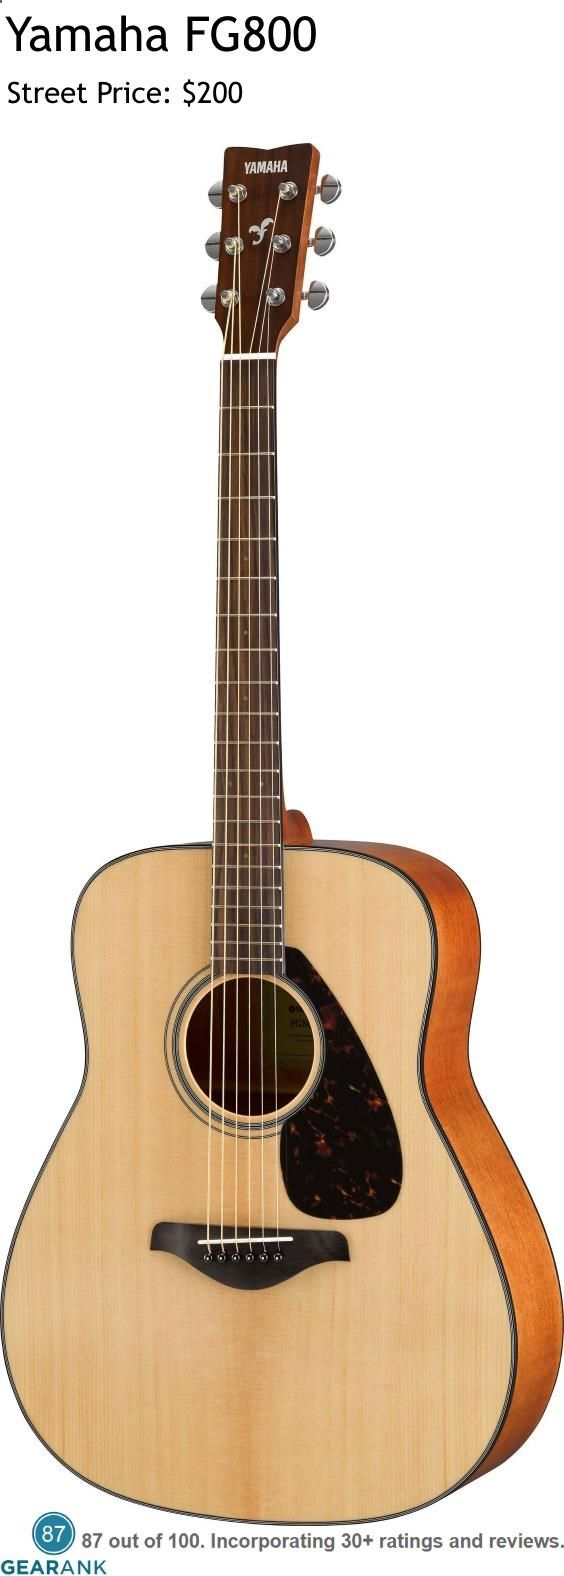 Yamaha FG800 Acoustic Guitar. At this price the FG800 offers excellent value with a Solid Spruce Top and Nato/Okume Back & Sides. For a Detailed Guide to The Best Acoustic Guitars see www.gearank.com/...